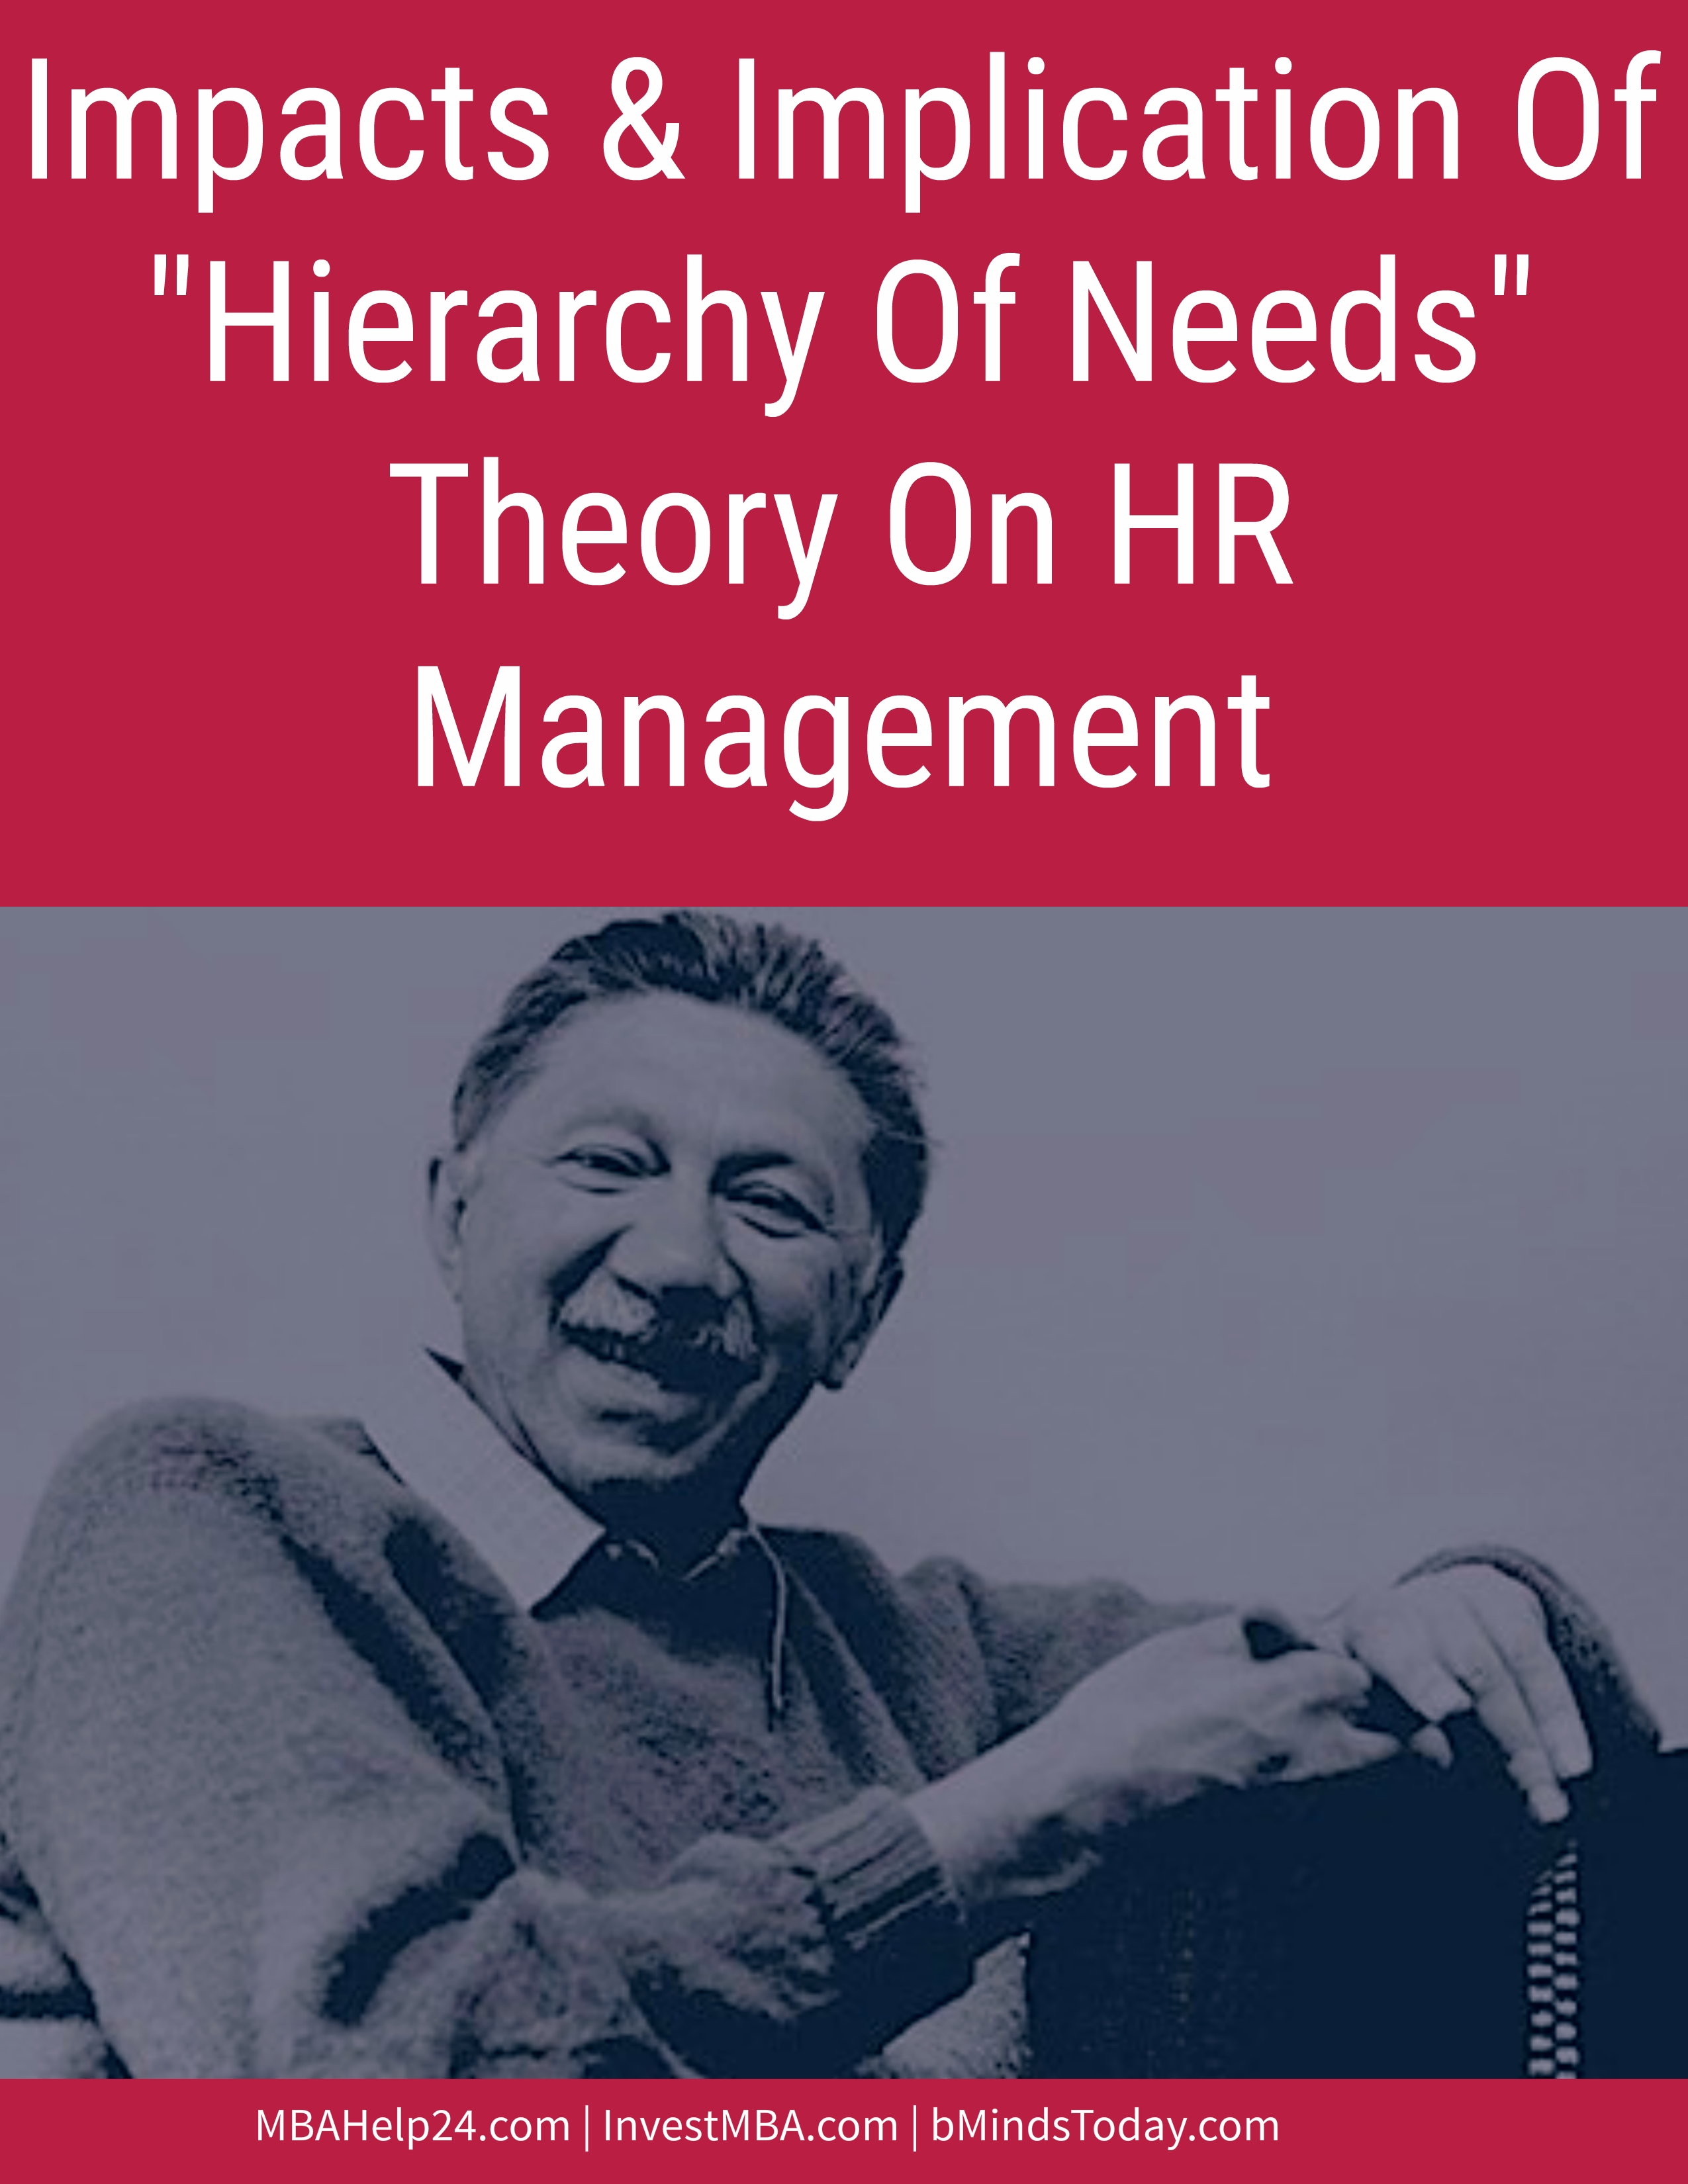 Impacts and implication of hierarchy of needs theory on human resource management Hierarchy of Needs Impacts & Implication Of Hierarchy Of Needs Theory On HR Management Impacts and implication of hierarchy of needs theory on human resource management